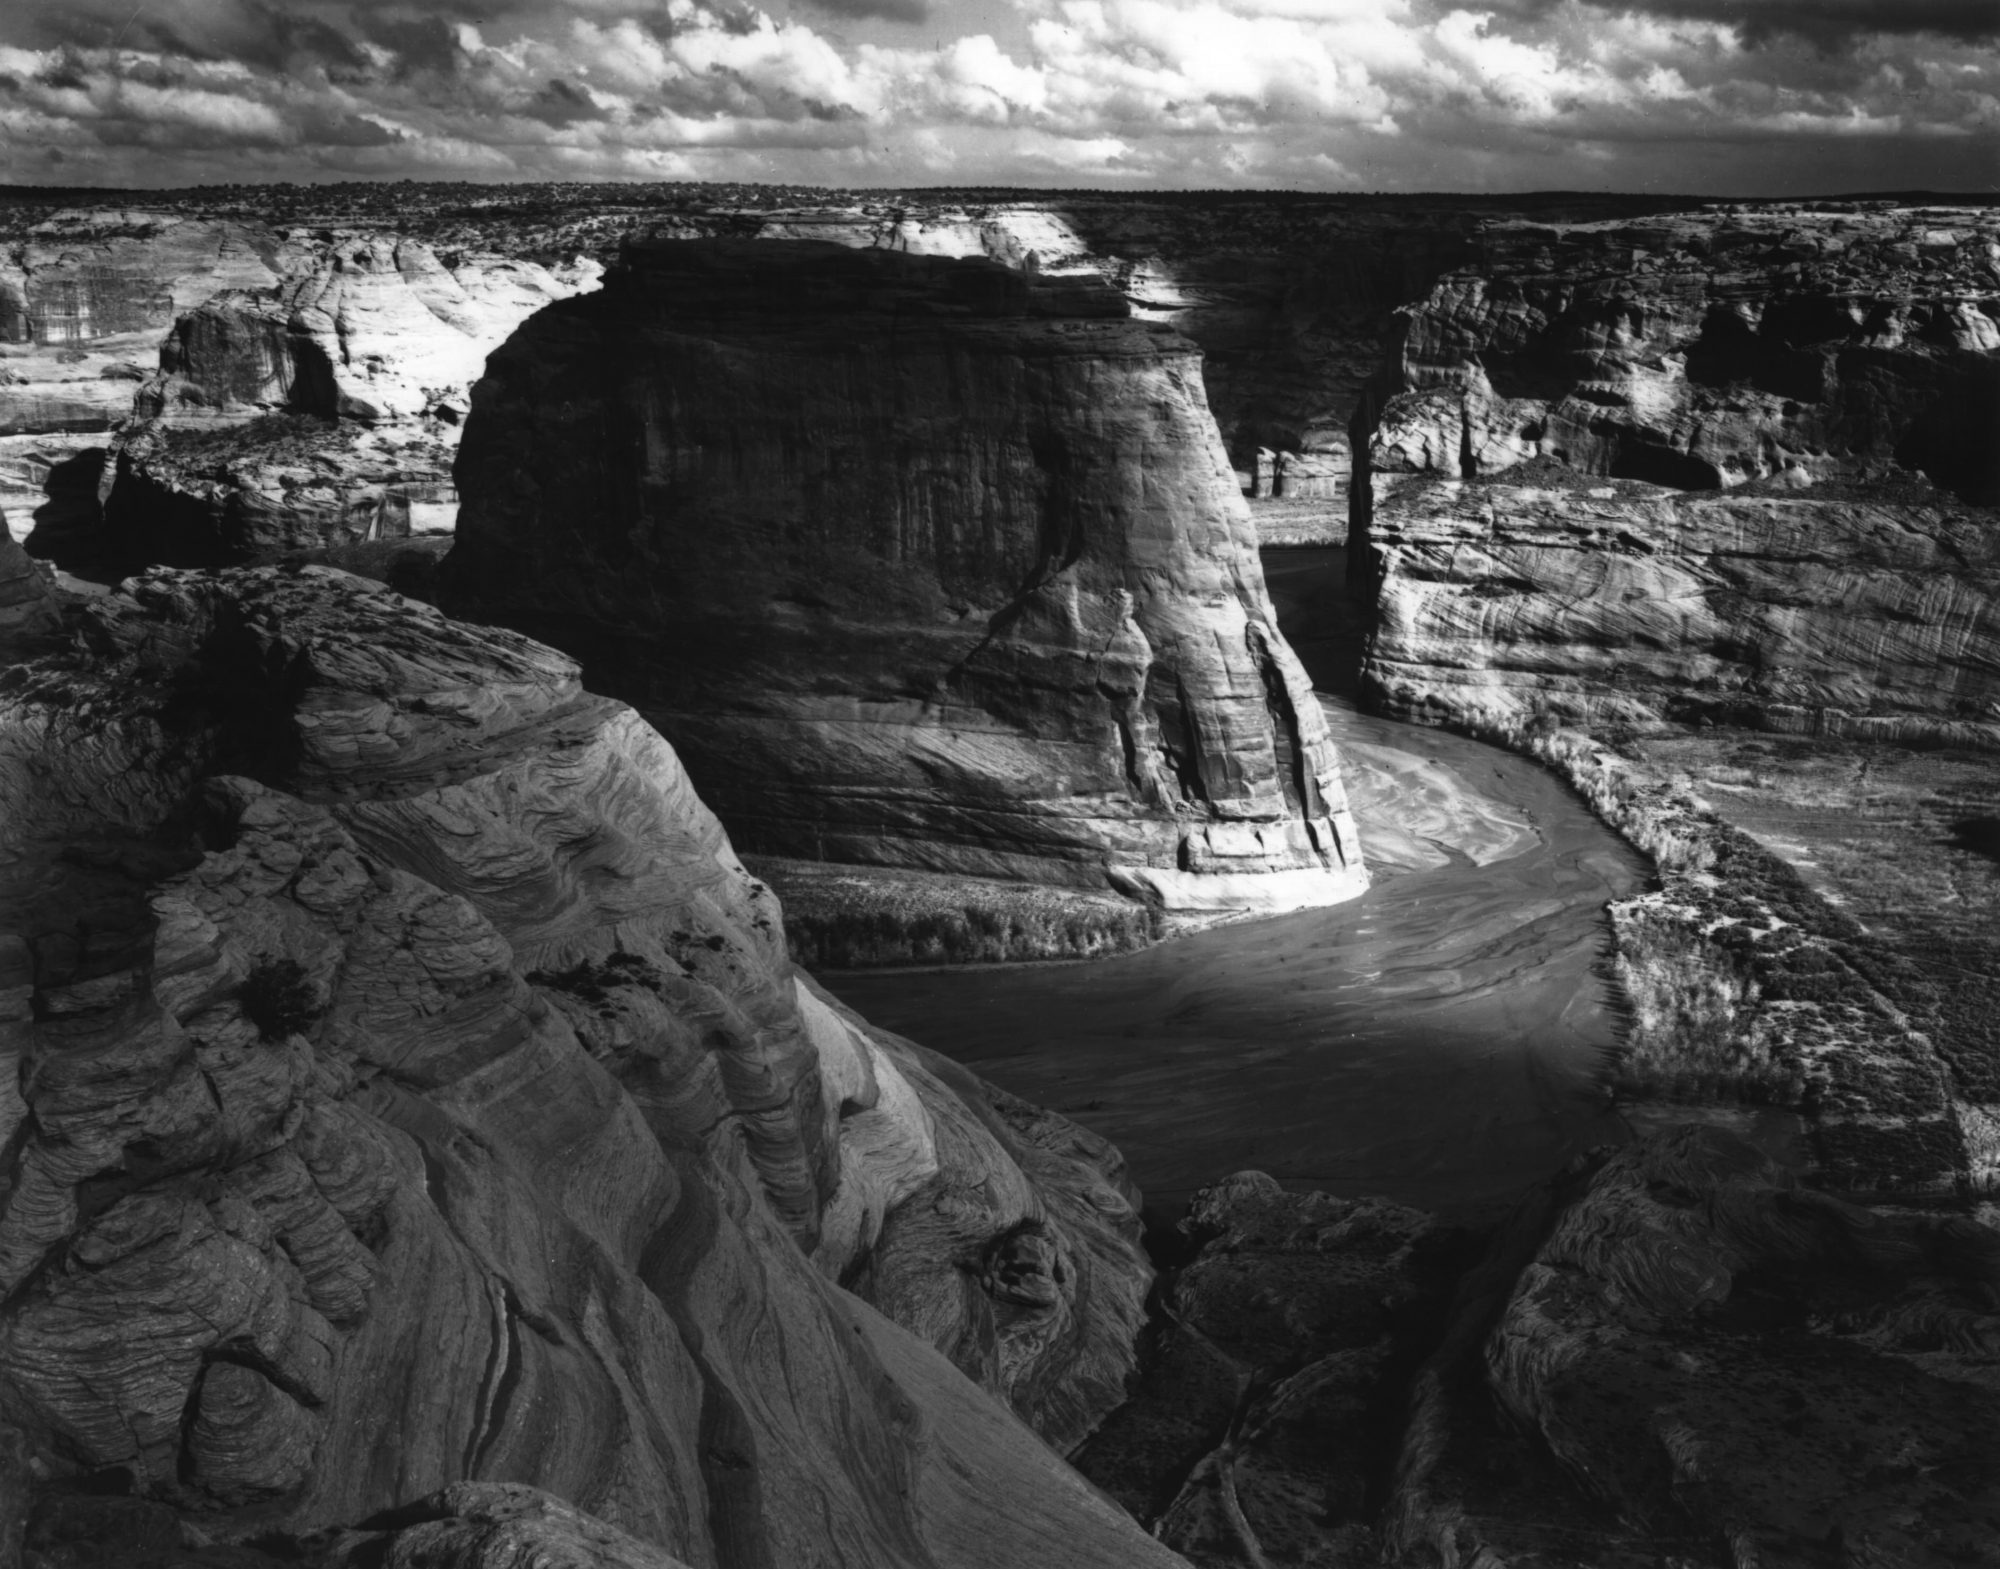 ansel-adams-black-and-white-landscape-photography-2